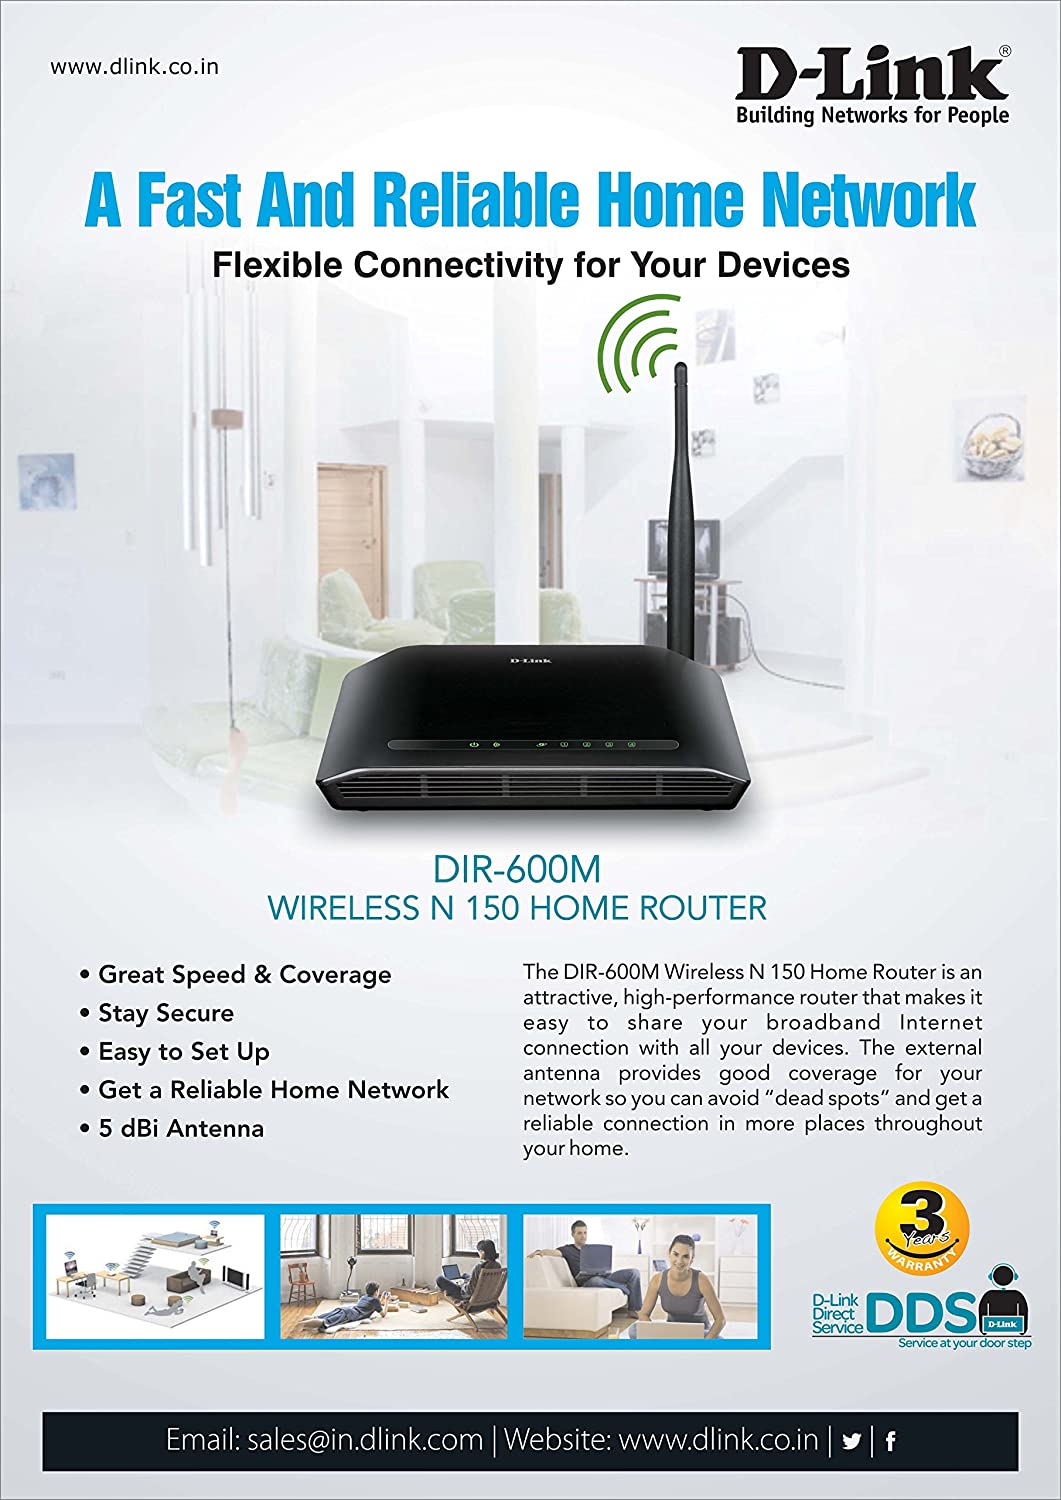 D-Link Dir-600M N150 Broadband Wireless Router (Not a Modem)